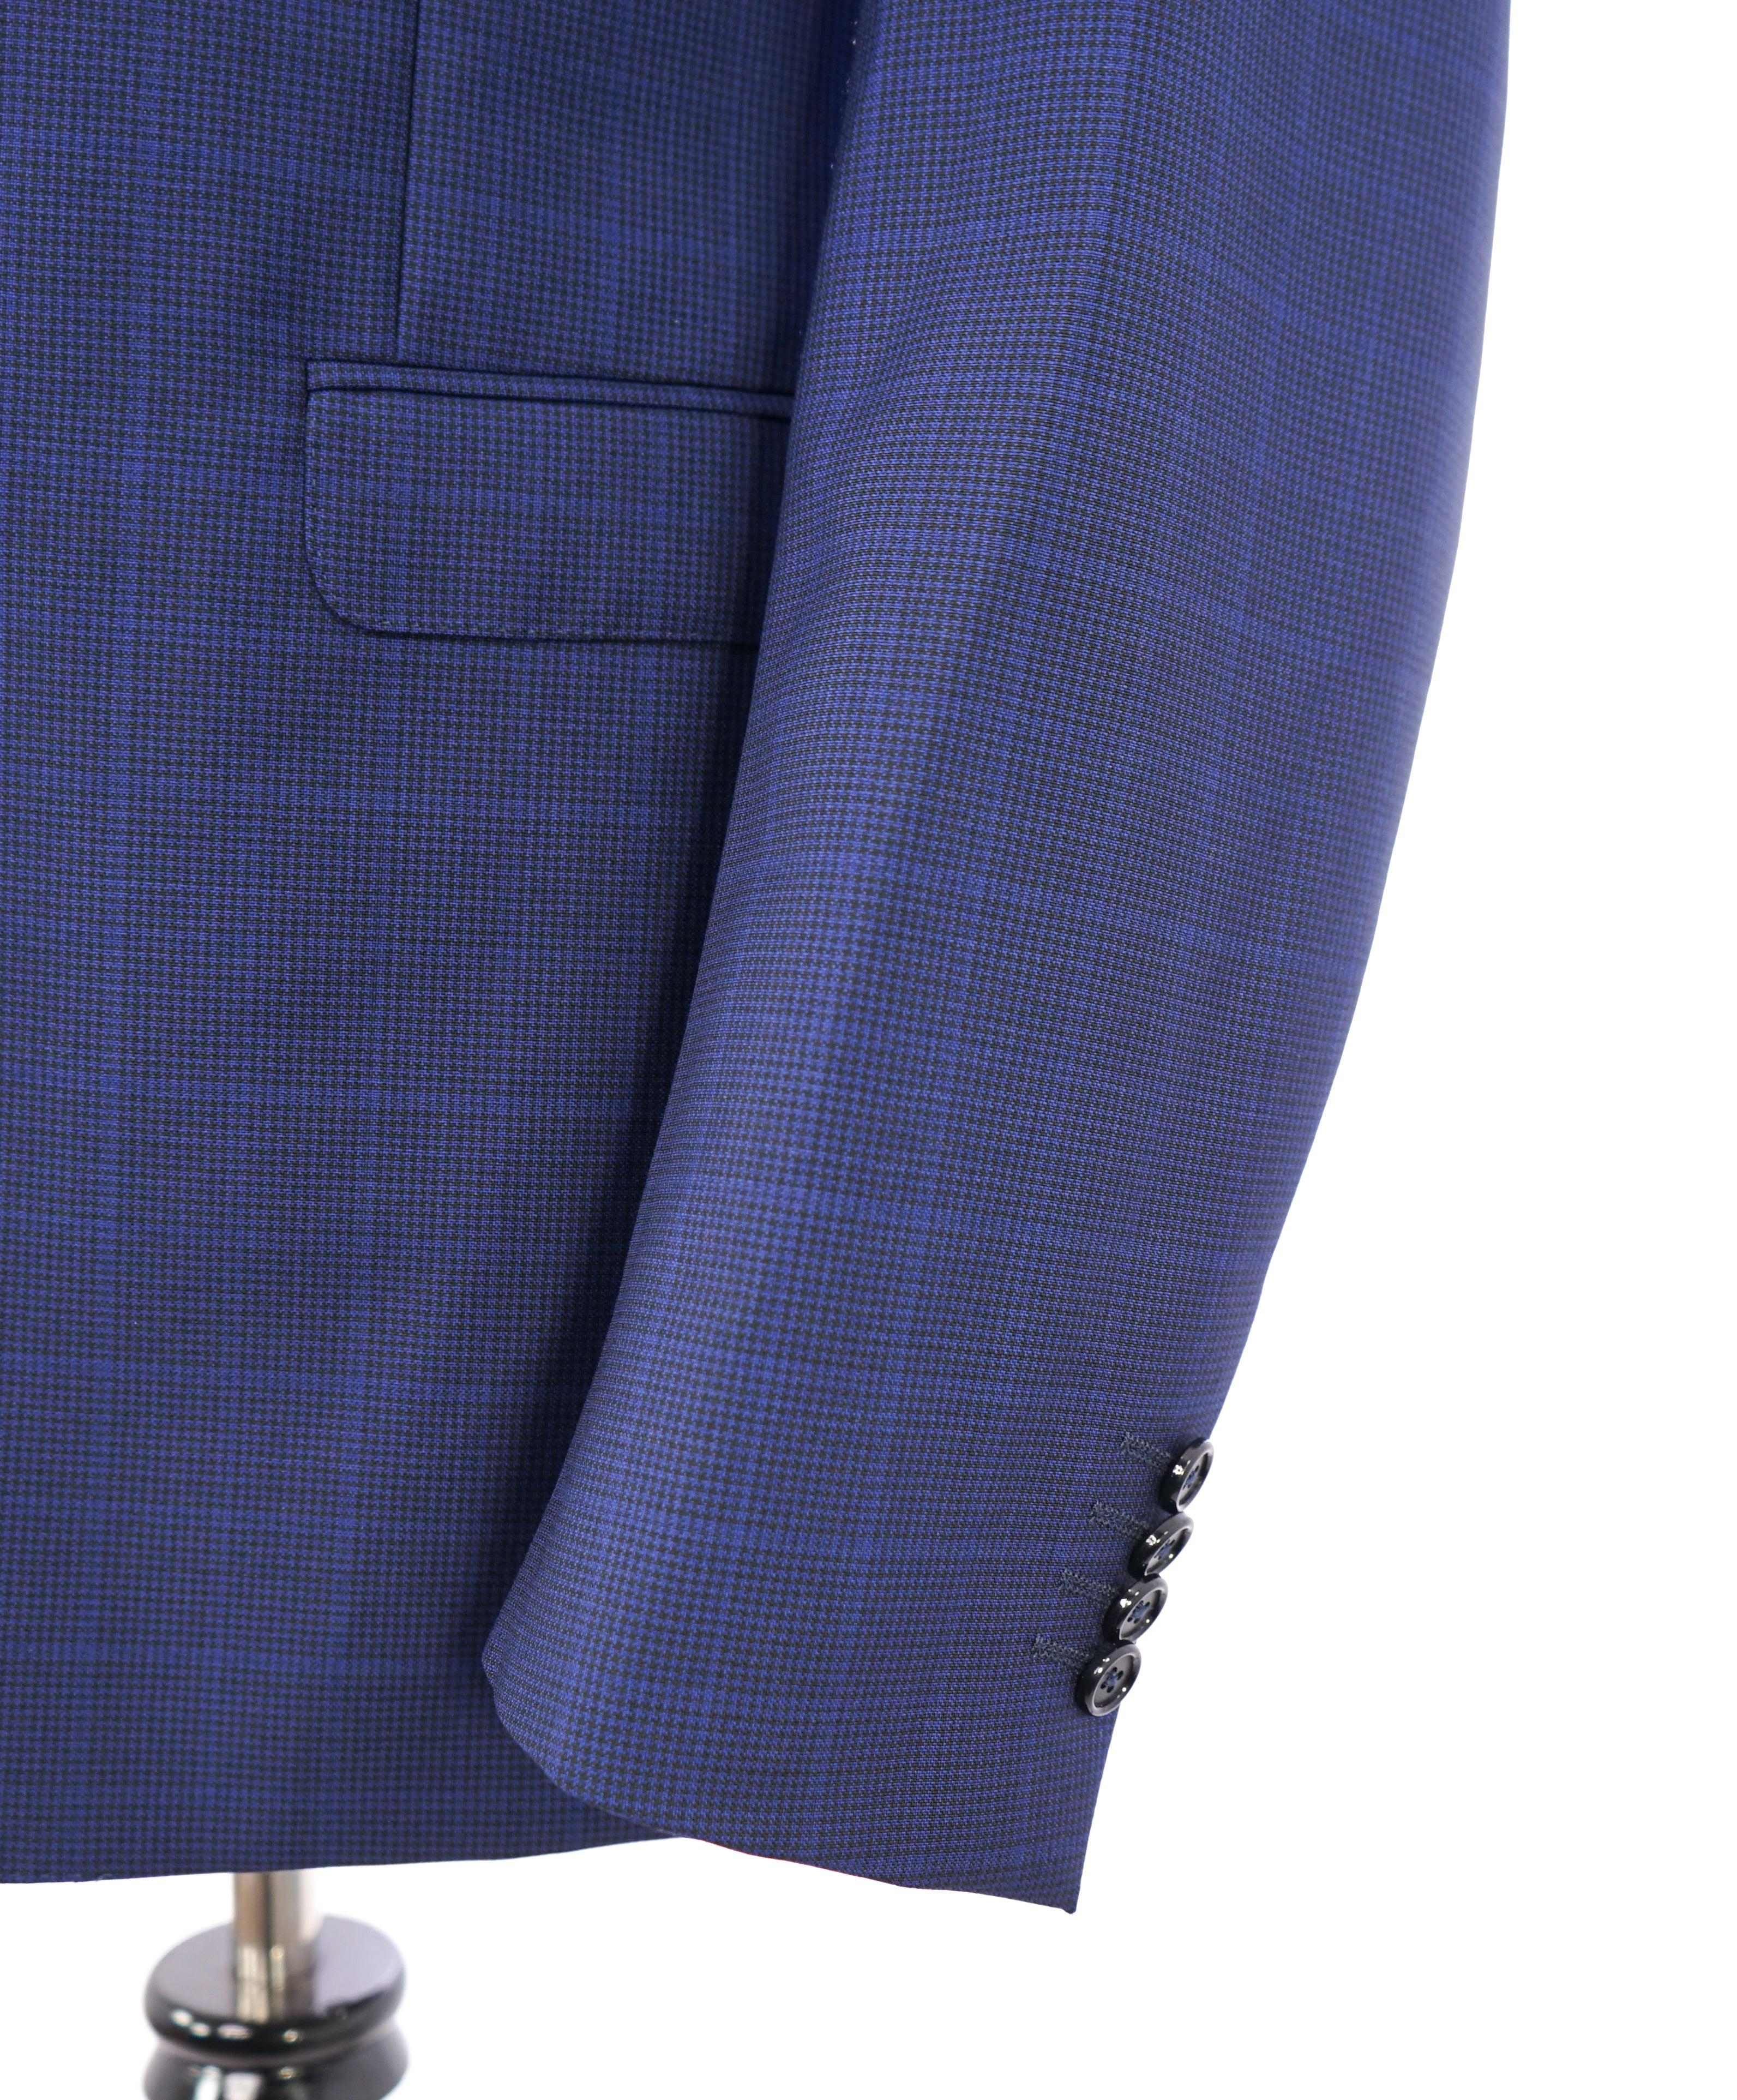 Z ZEGNA - Cobalt Blue Textured Plaid Check Fabric Drop 7 Wool Suit - 40R